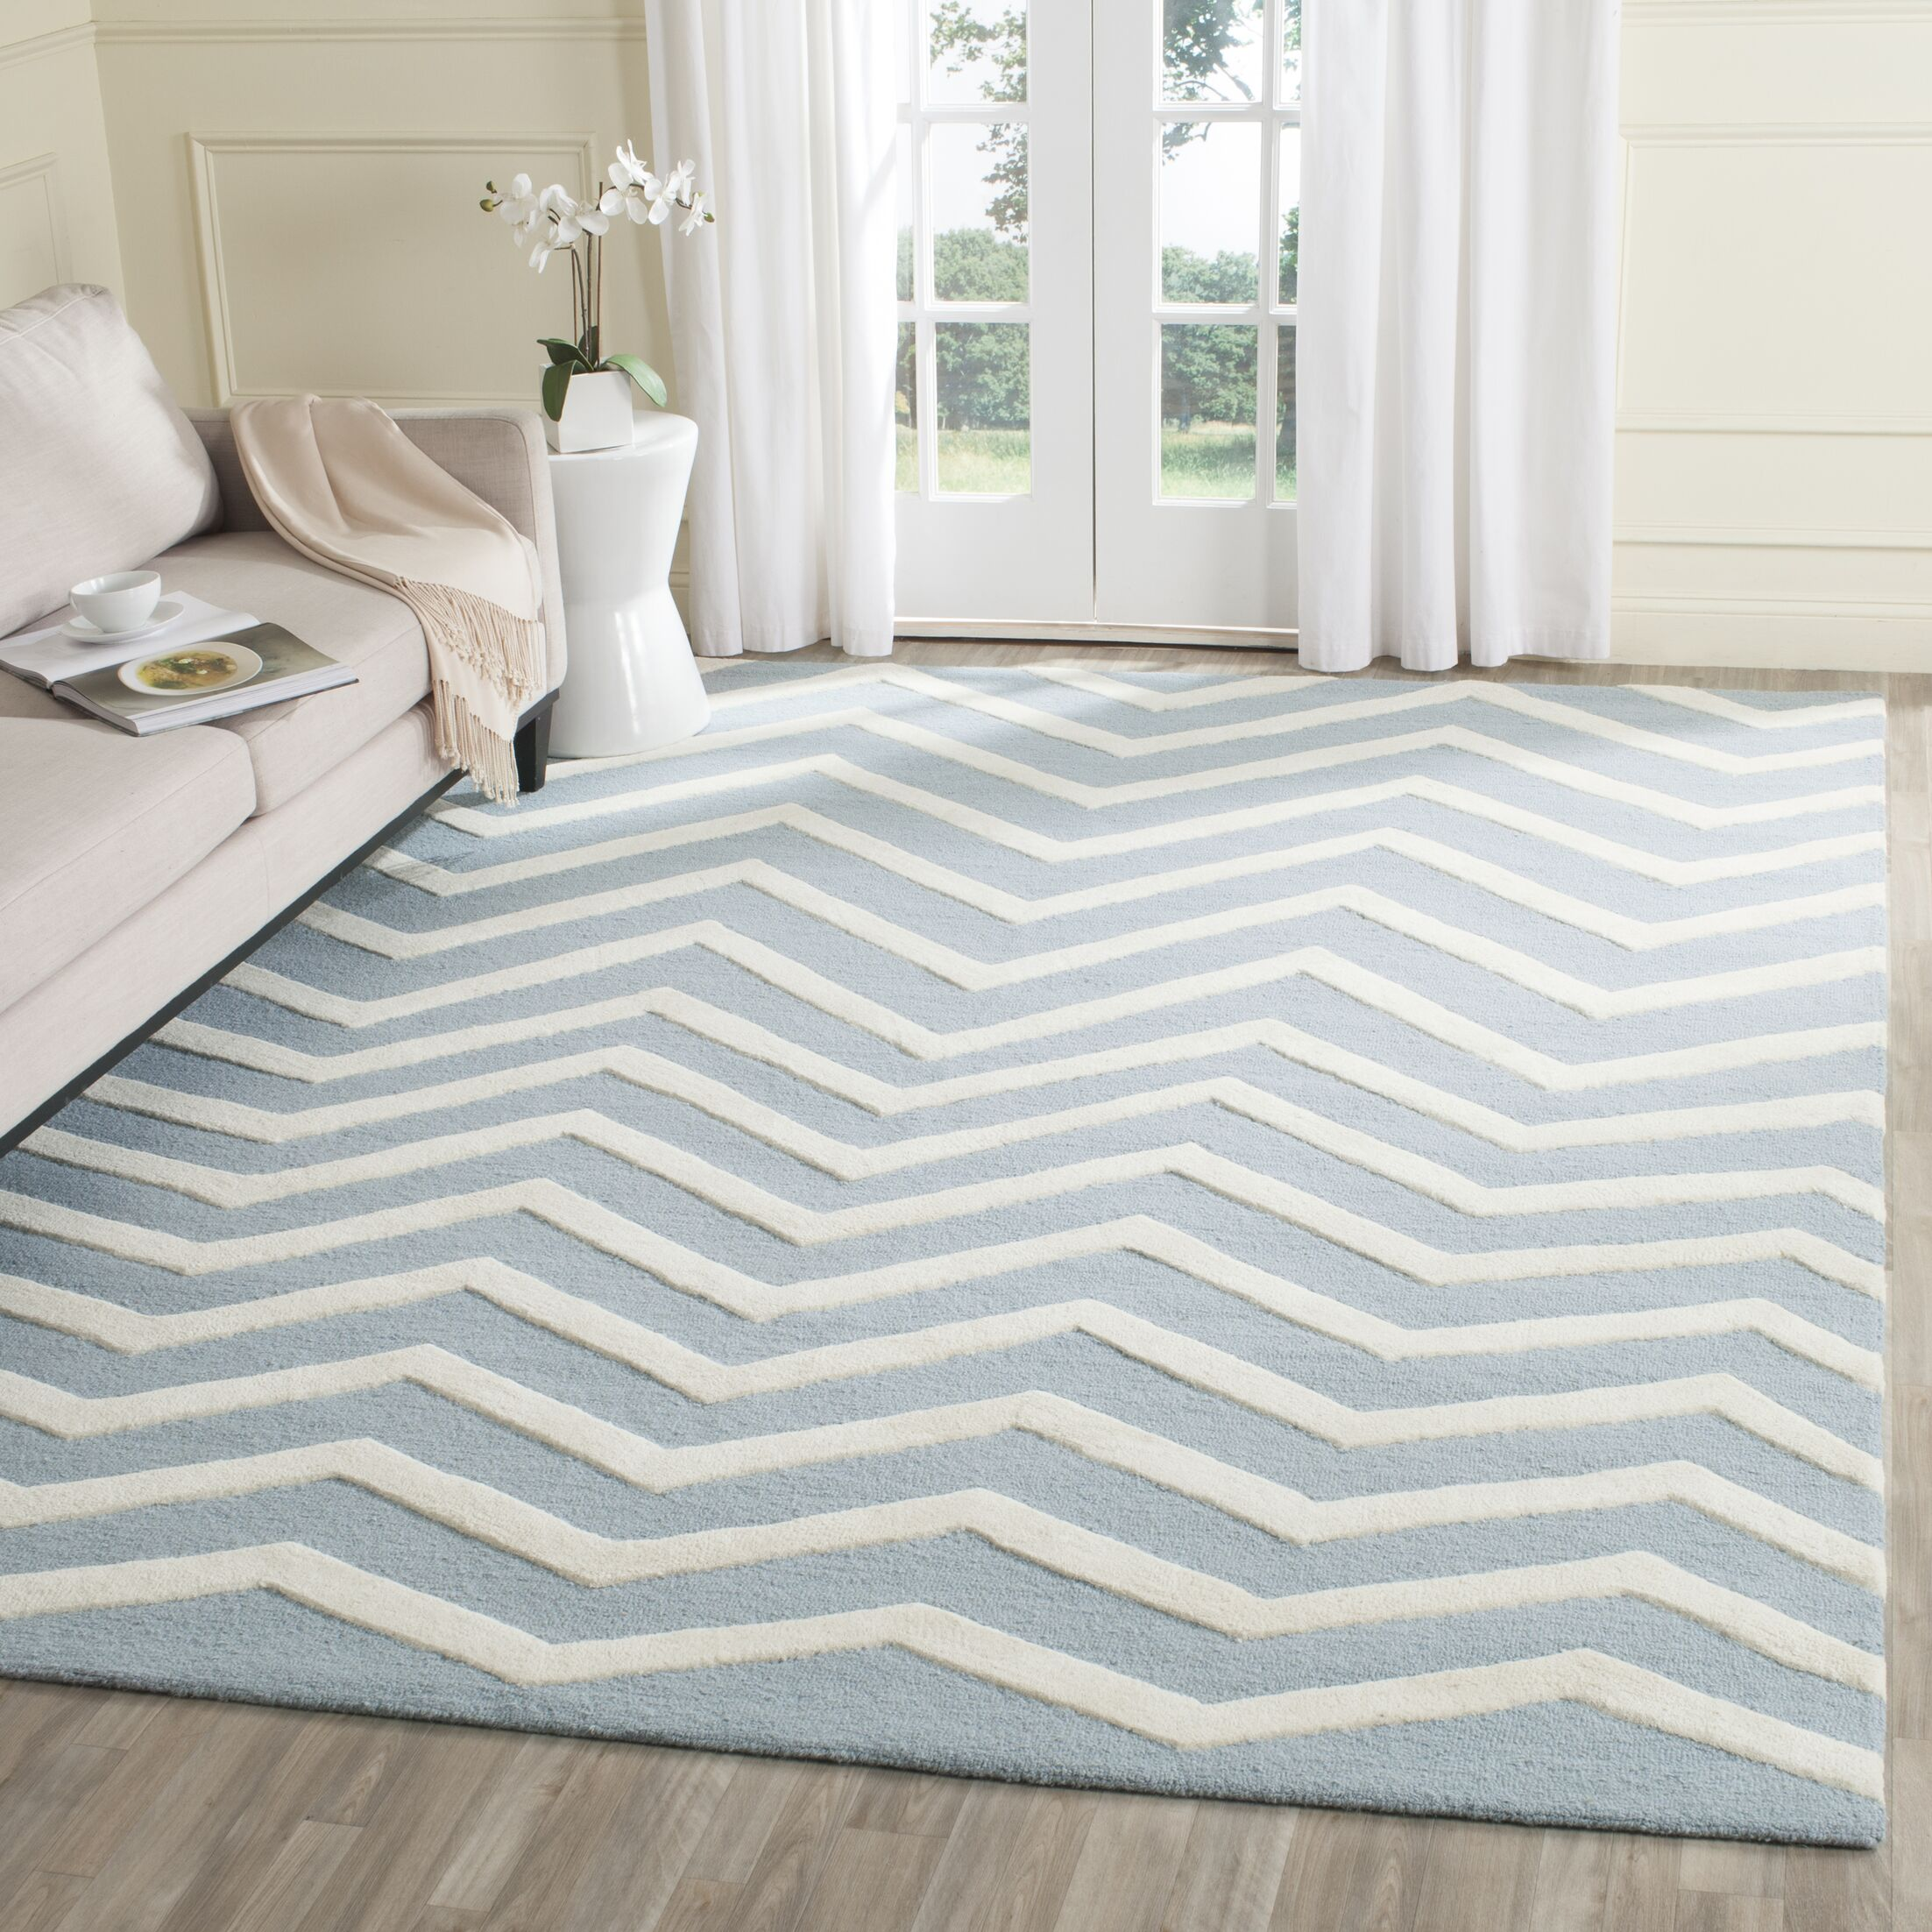 Charlenne Hand-Tufted Wool Gray/Ivory Area Rug Rug Size: Square 6'